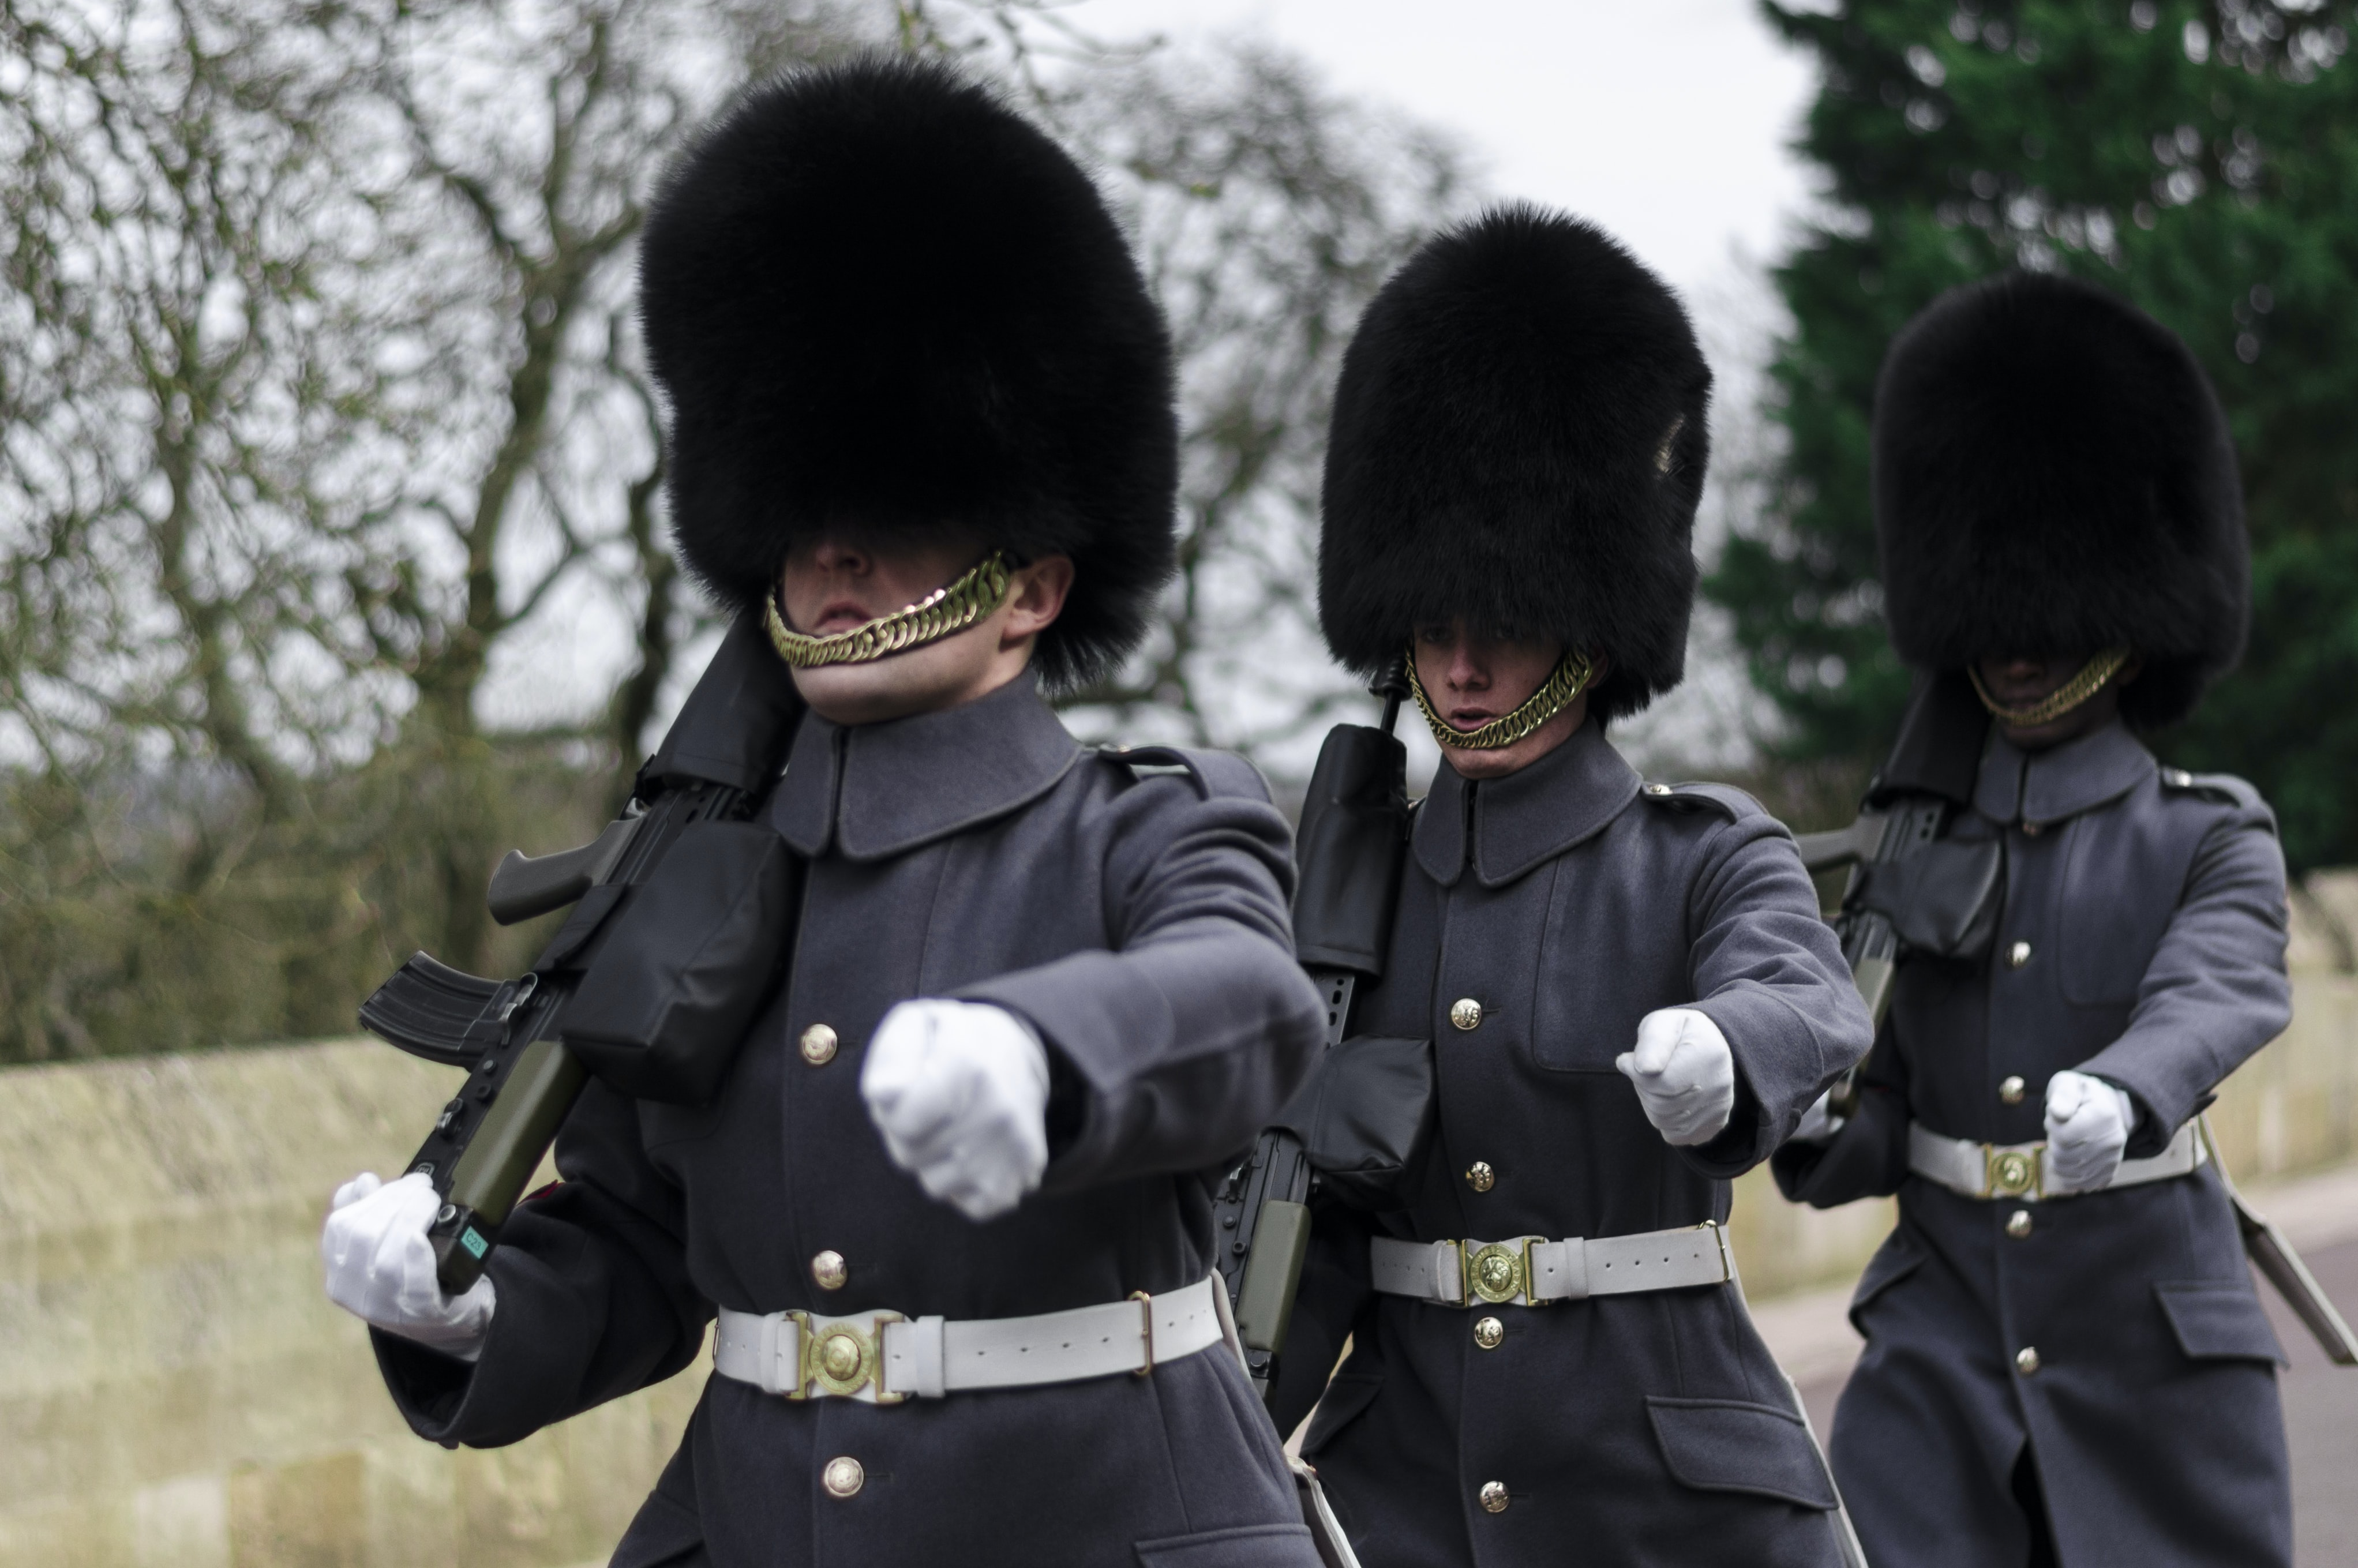 three Queen's guards carrying sub-machine guns